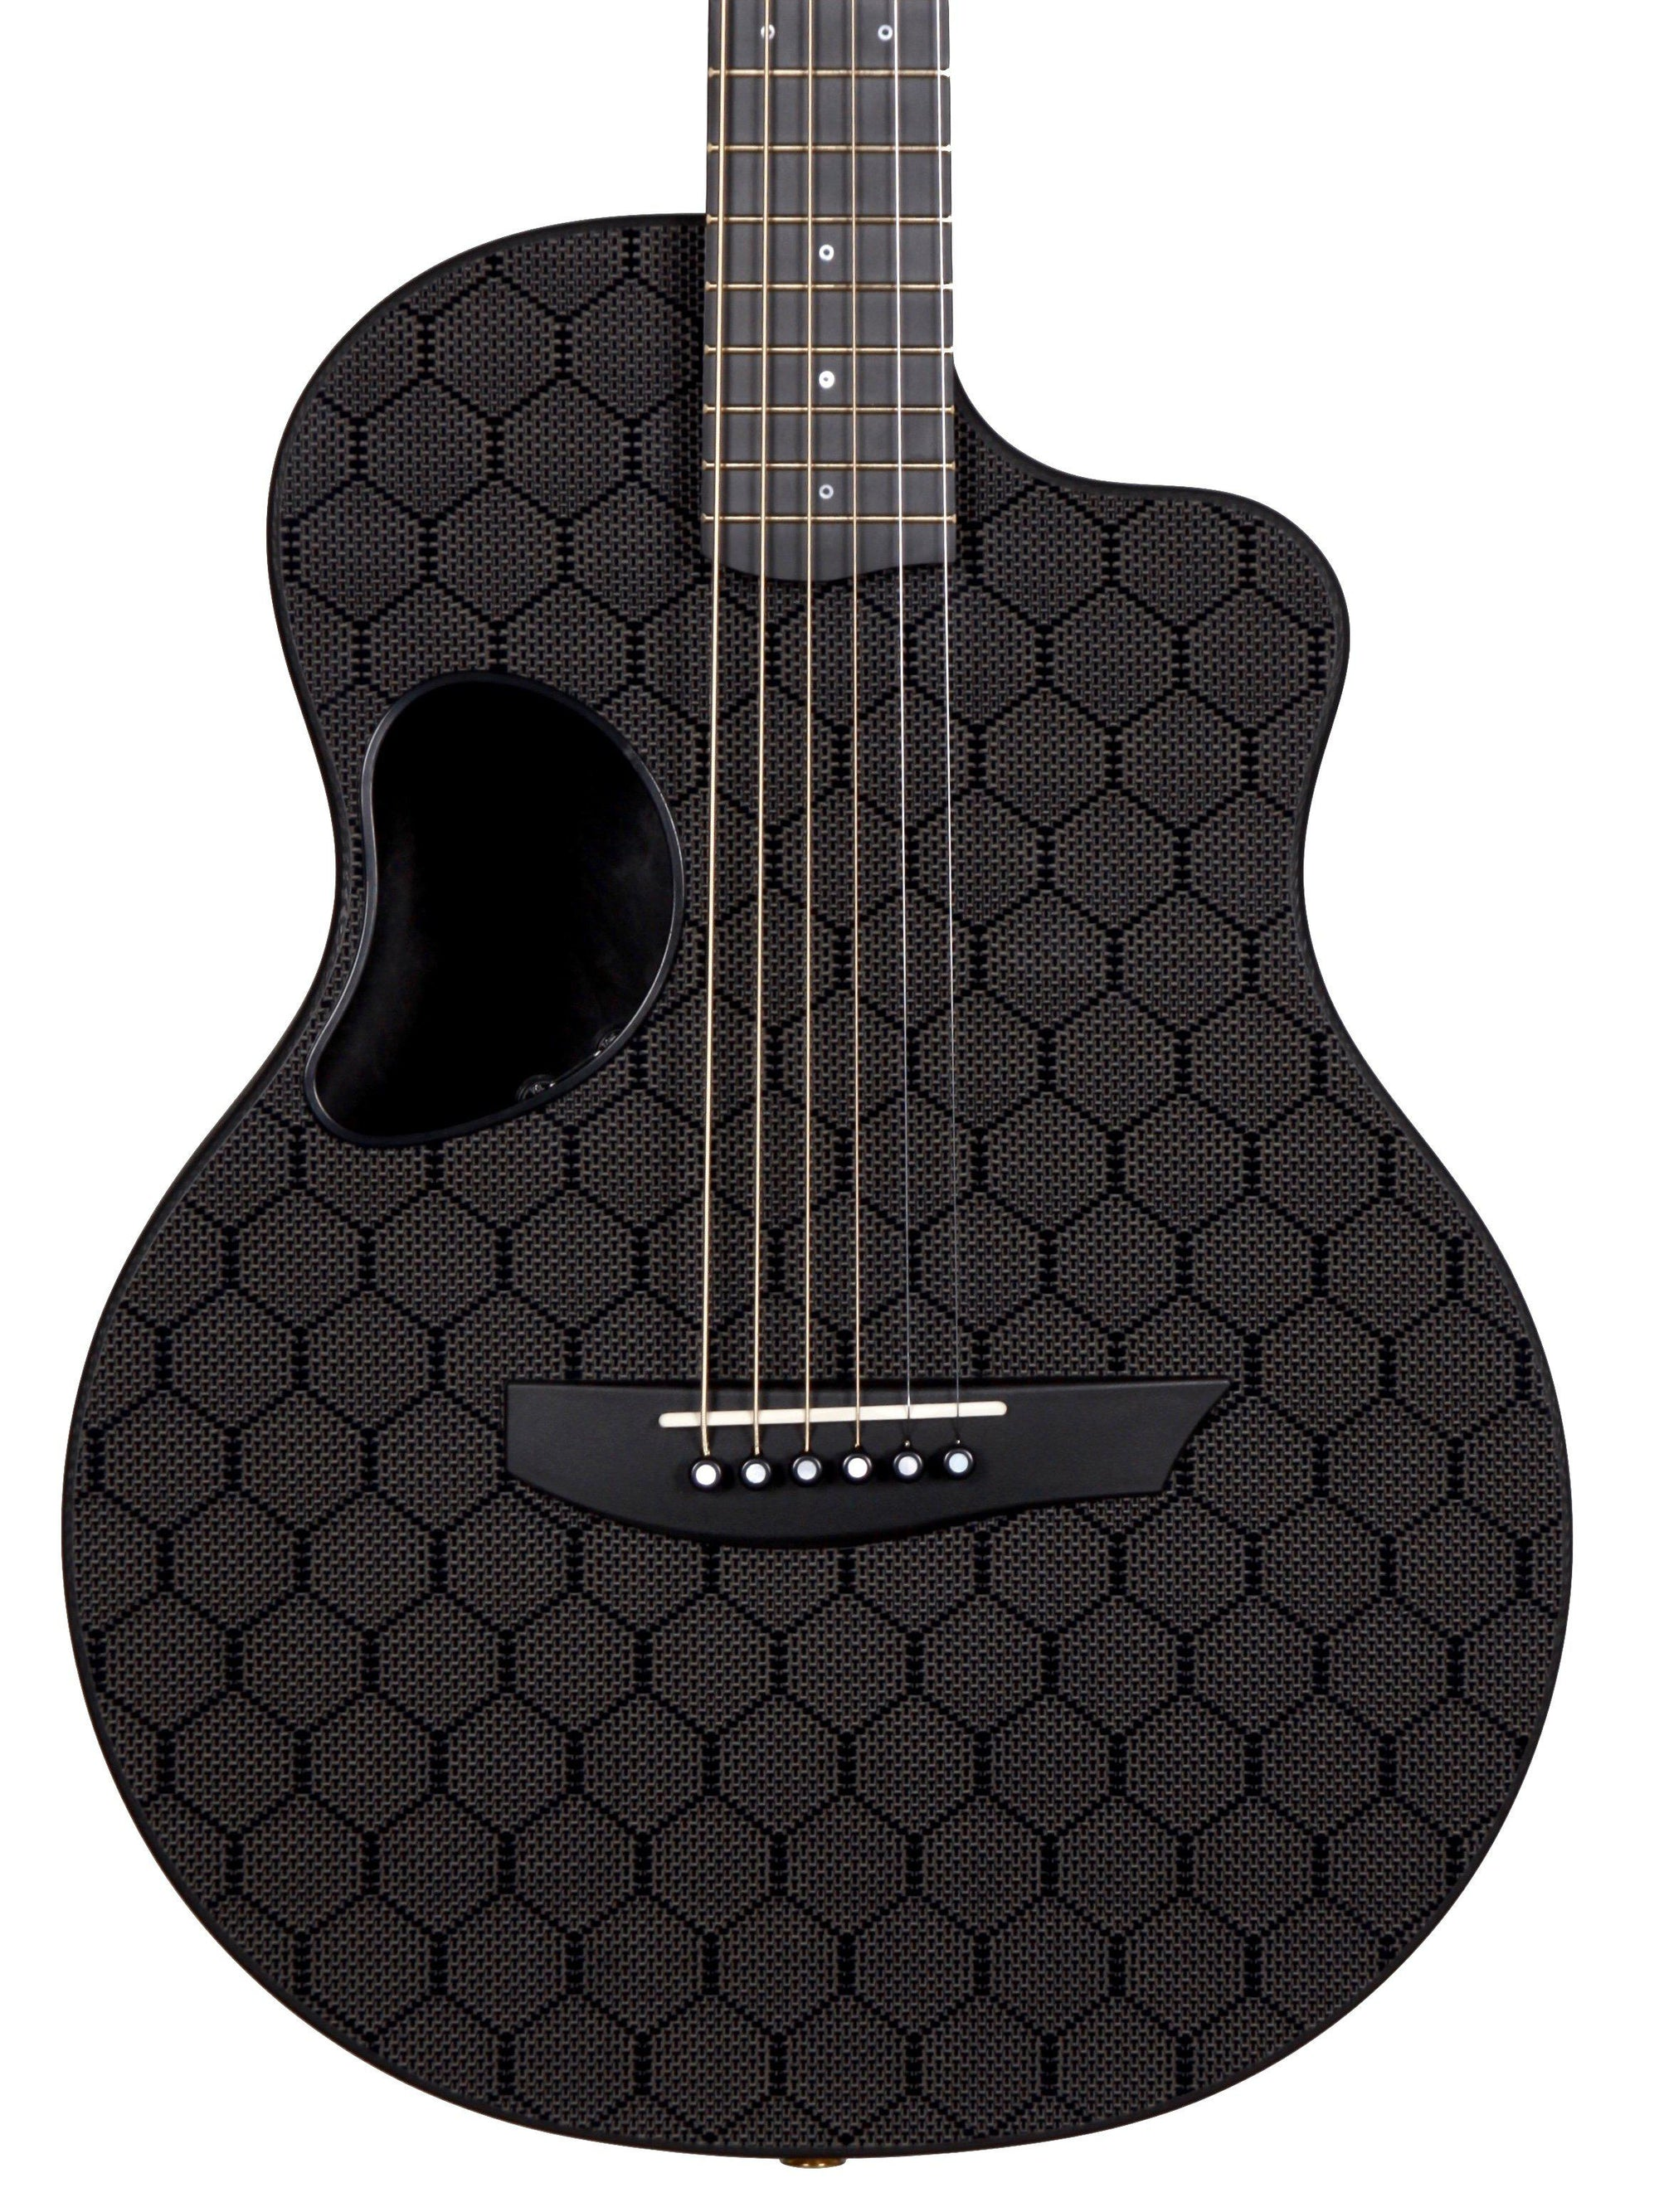 McPherson Carbon Fiber Touring Model Honeycomb Finish and Chrome Hardware #10168 - McPherson Guitars - Heartbreaker Guitars